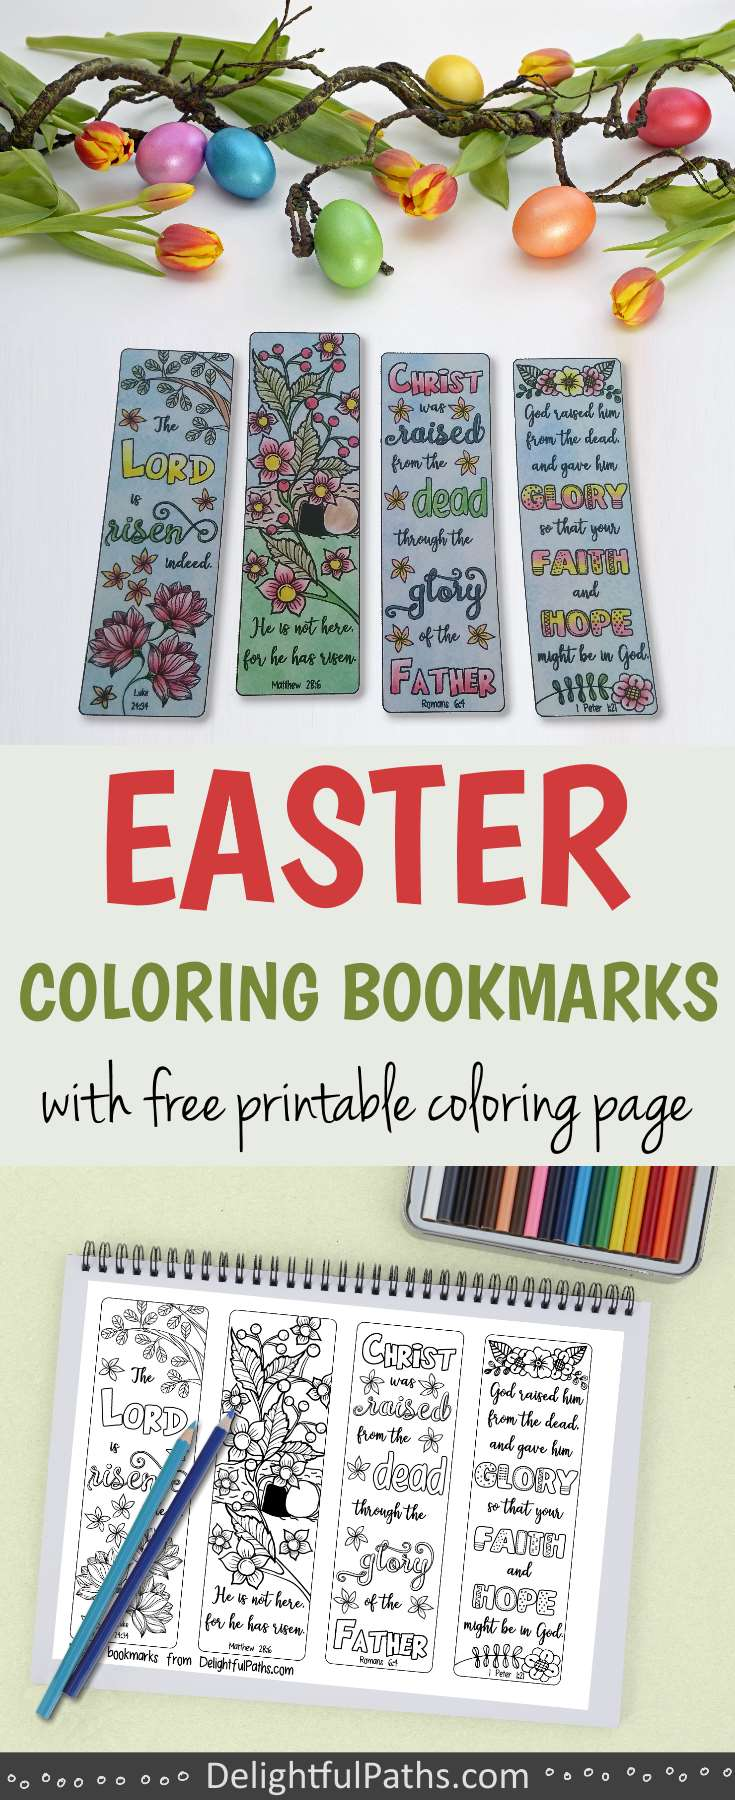 picture relating to Who I Am in Christ Printable Bookmark referred to as Easter Coloring Bookmarks with Bible Verses - Scrumptious Paths